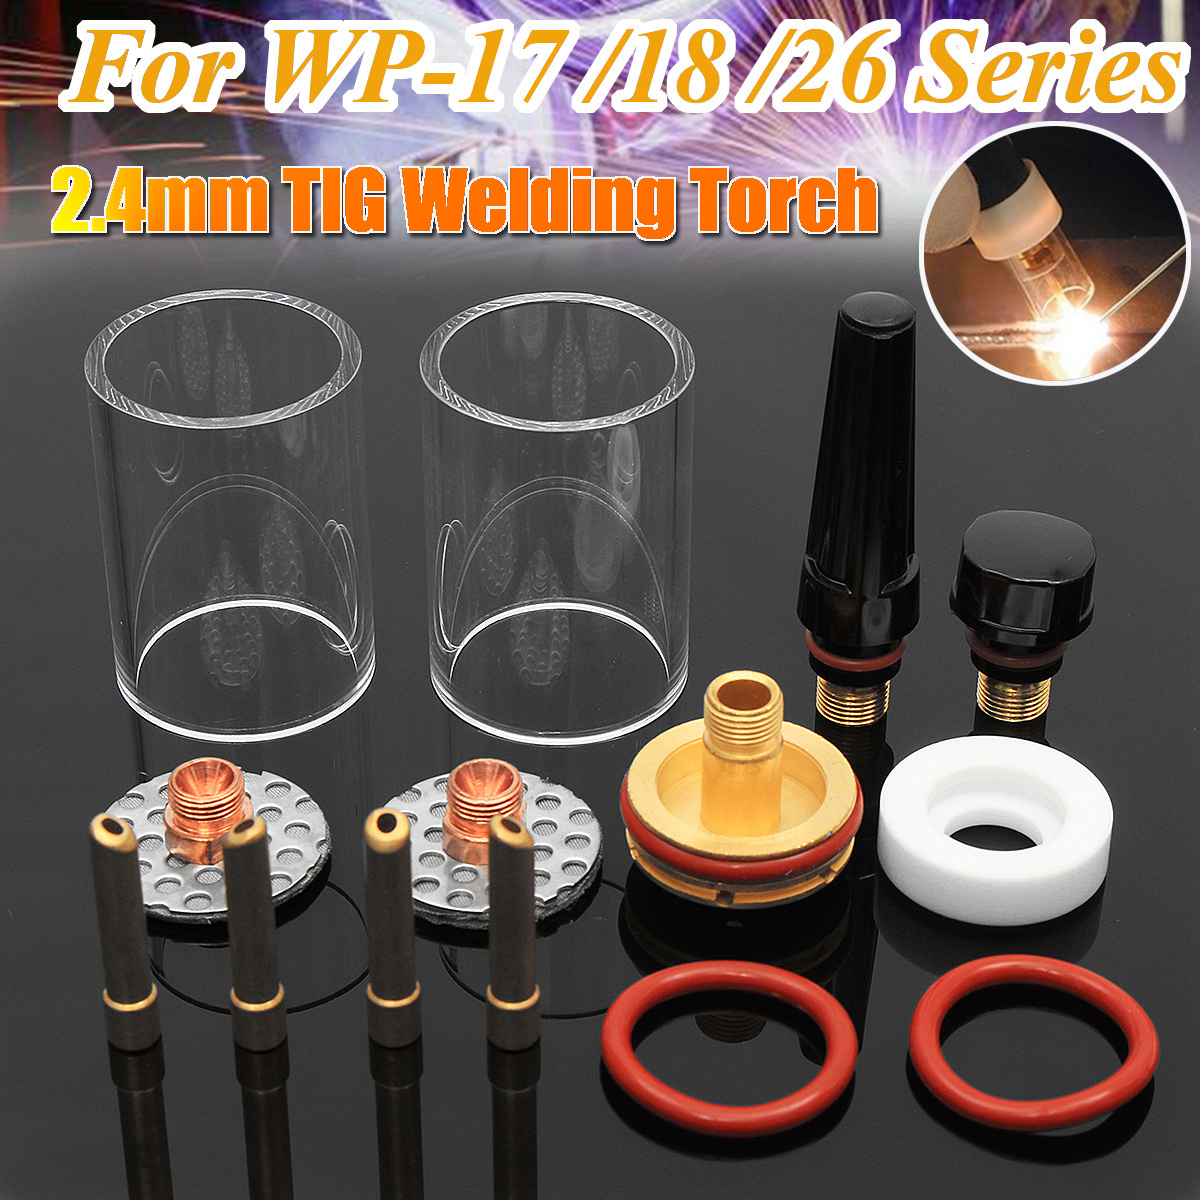 New 14Pcs TIG Welding Torch Stubby Gas Lens Glass Cup Kit For WP17/18/26 Series 2.4mm 3/32'' 1set 14pcs tig welding torch stubby gas lens glass pyrex cup kit 3 2mm 1 8 for wp17 18 26 welding series